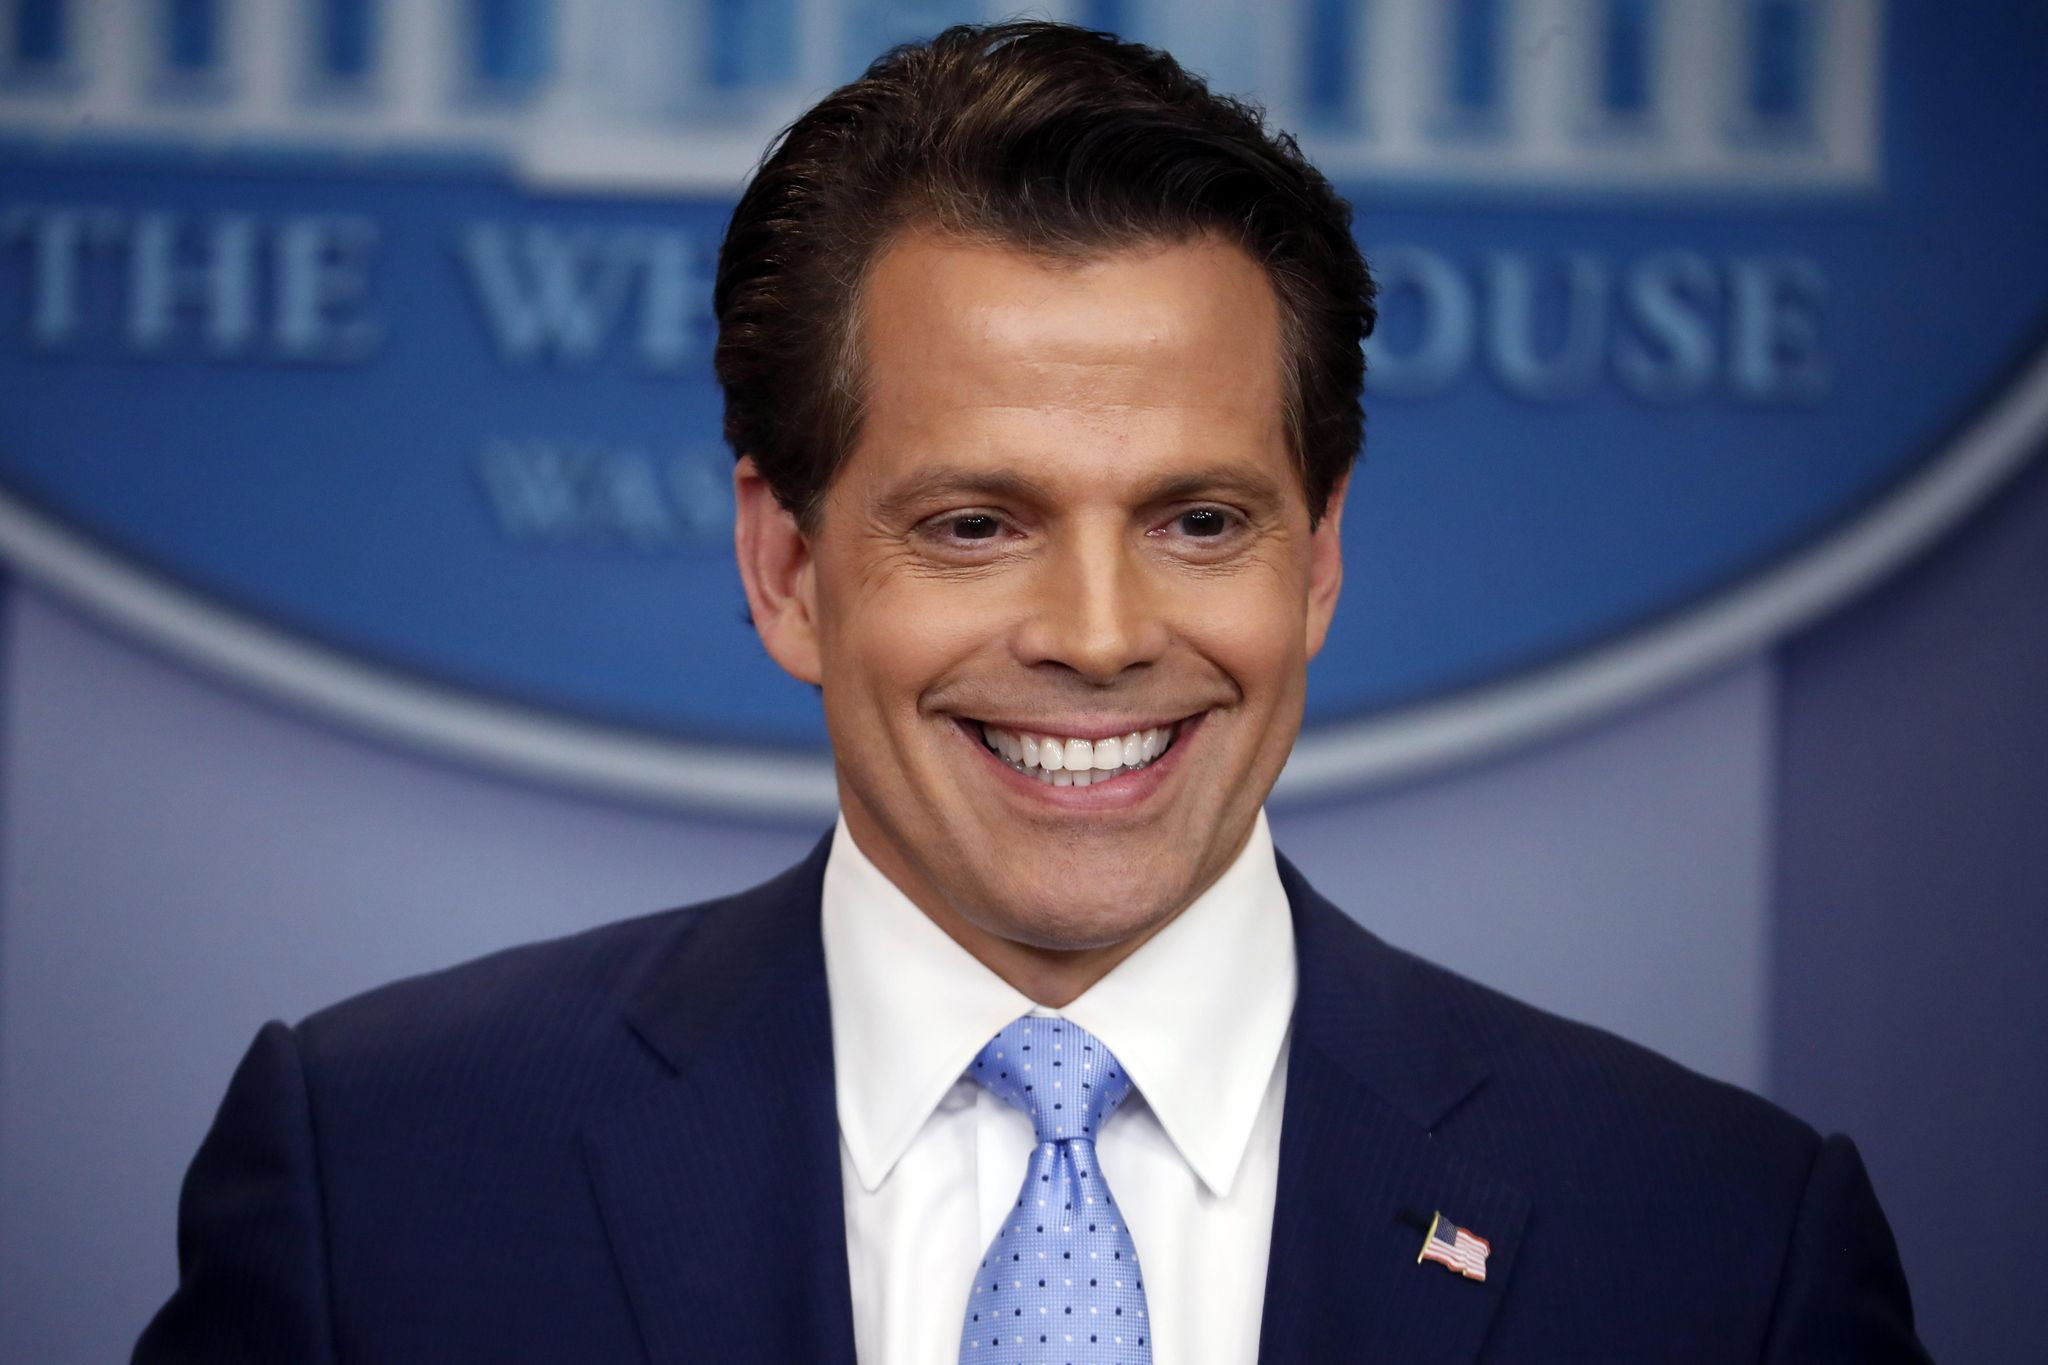 Anthony Scaramucci: Ivanka Trump's personal email use was 'hypocritical'